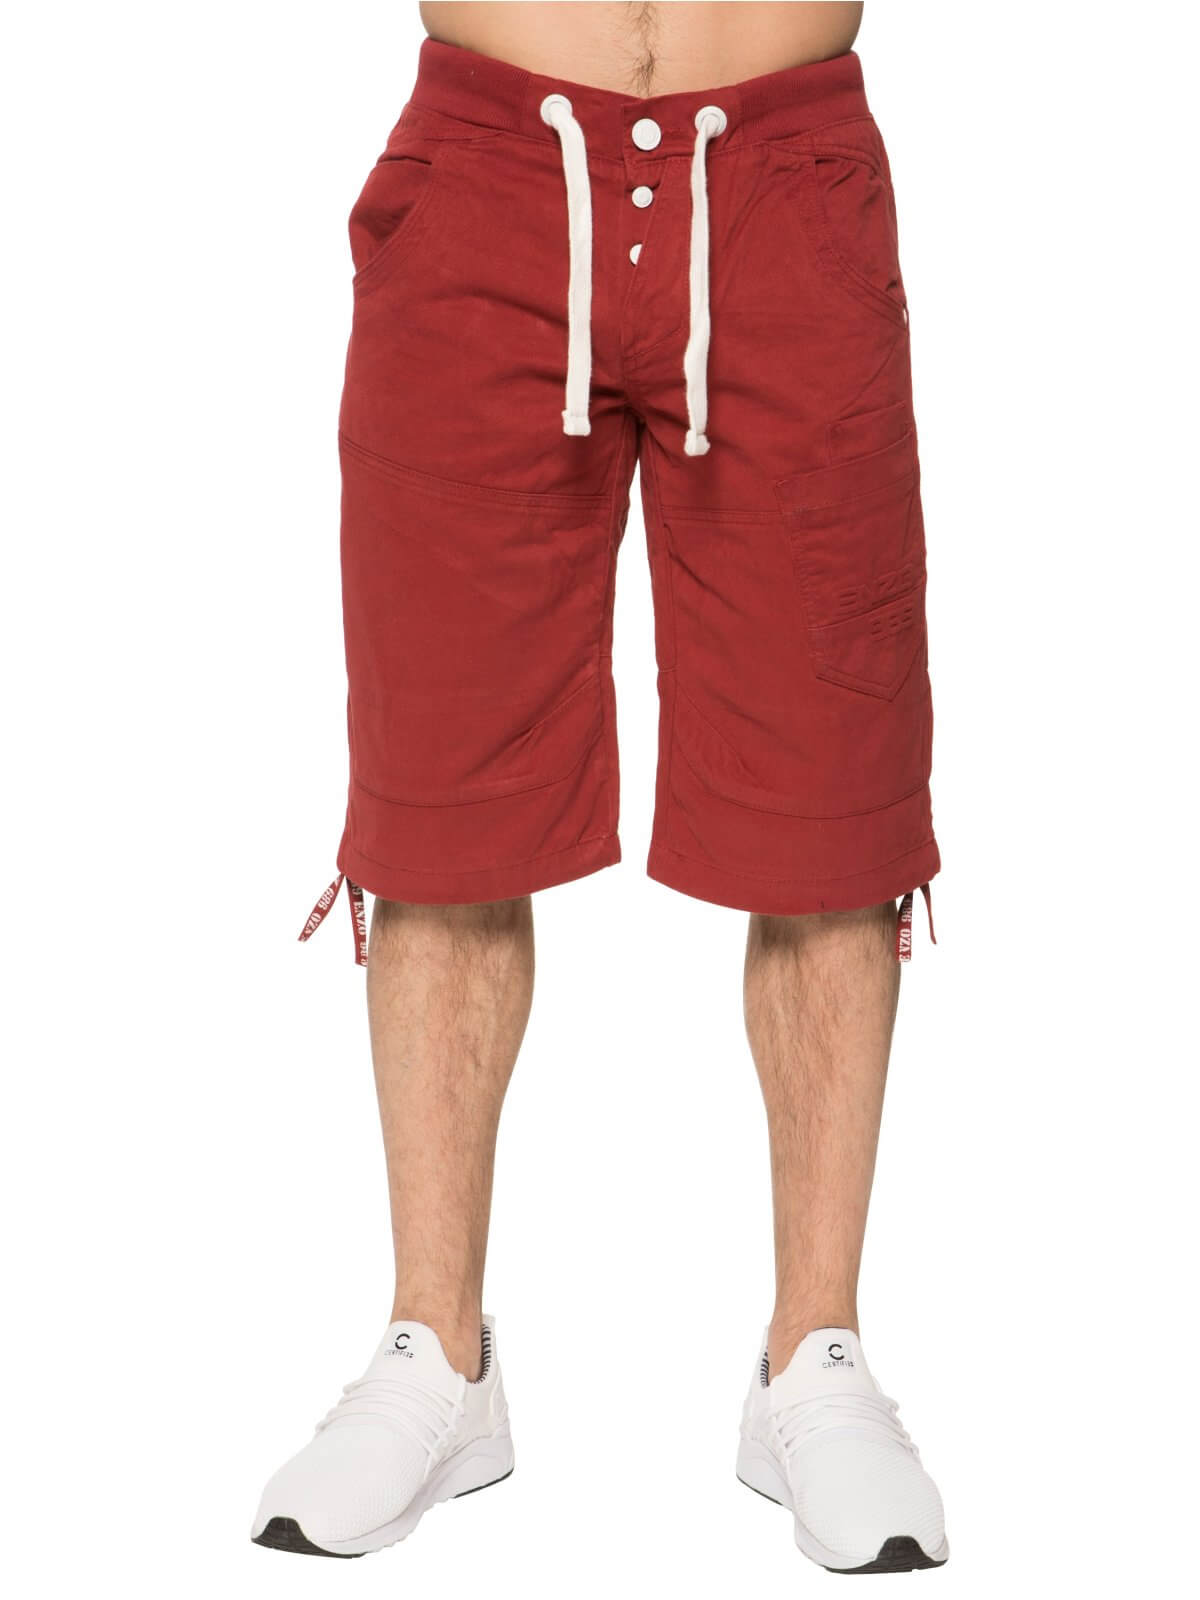 Clearance | Mens Red Summer Shorts | Enzo Designer Menswear